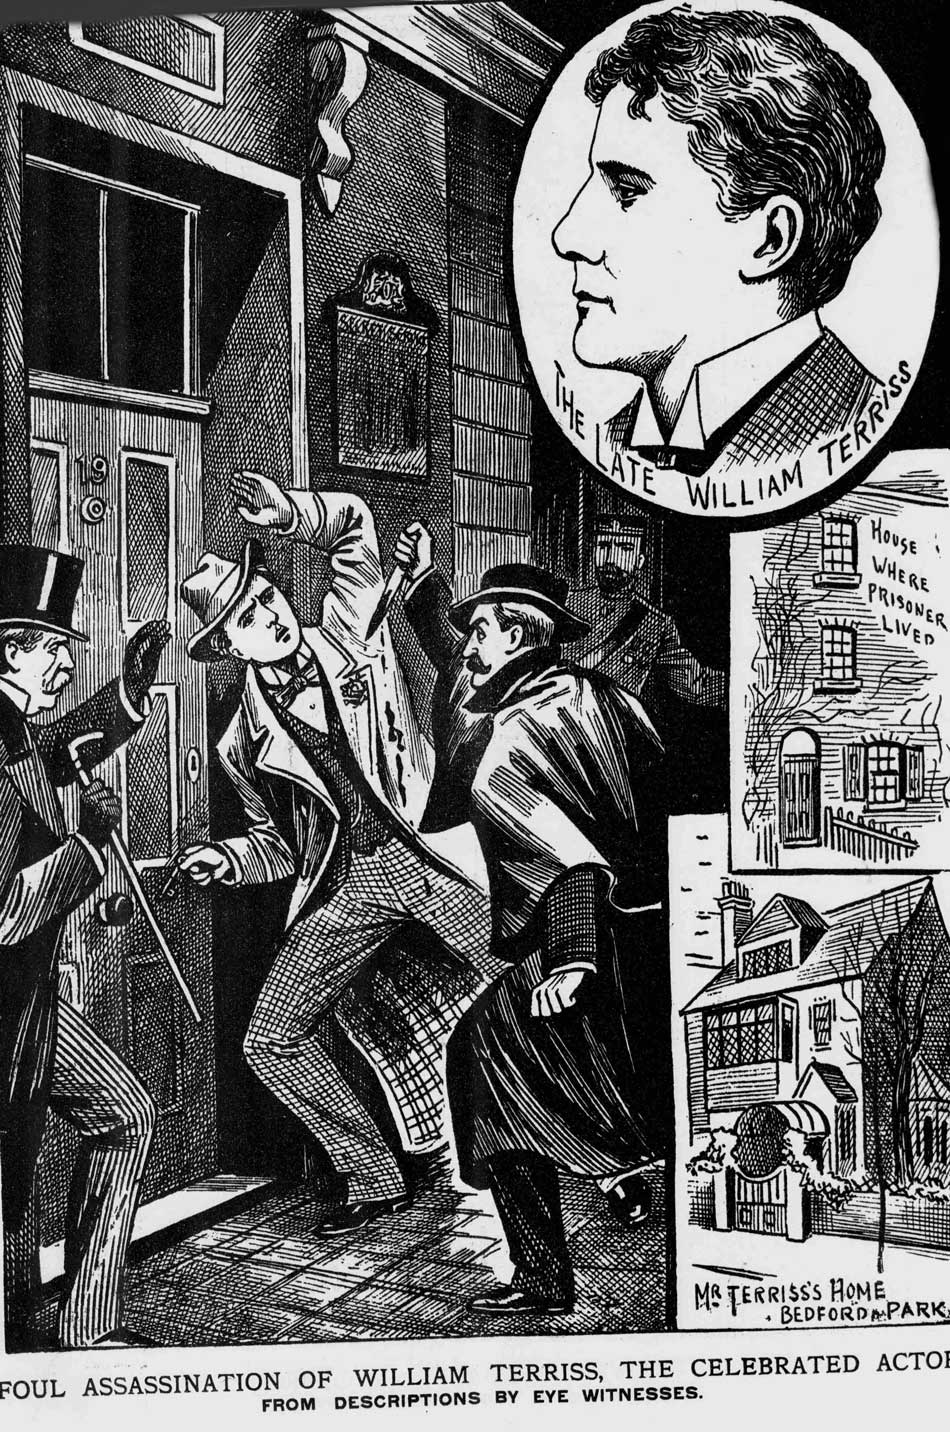 An illustration showing the knife attack on William Terriss.